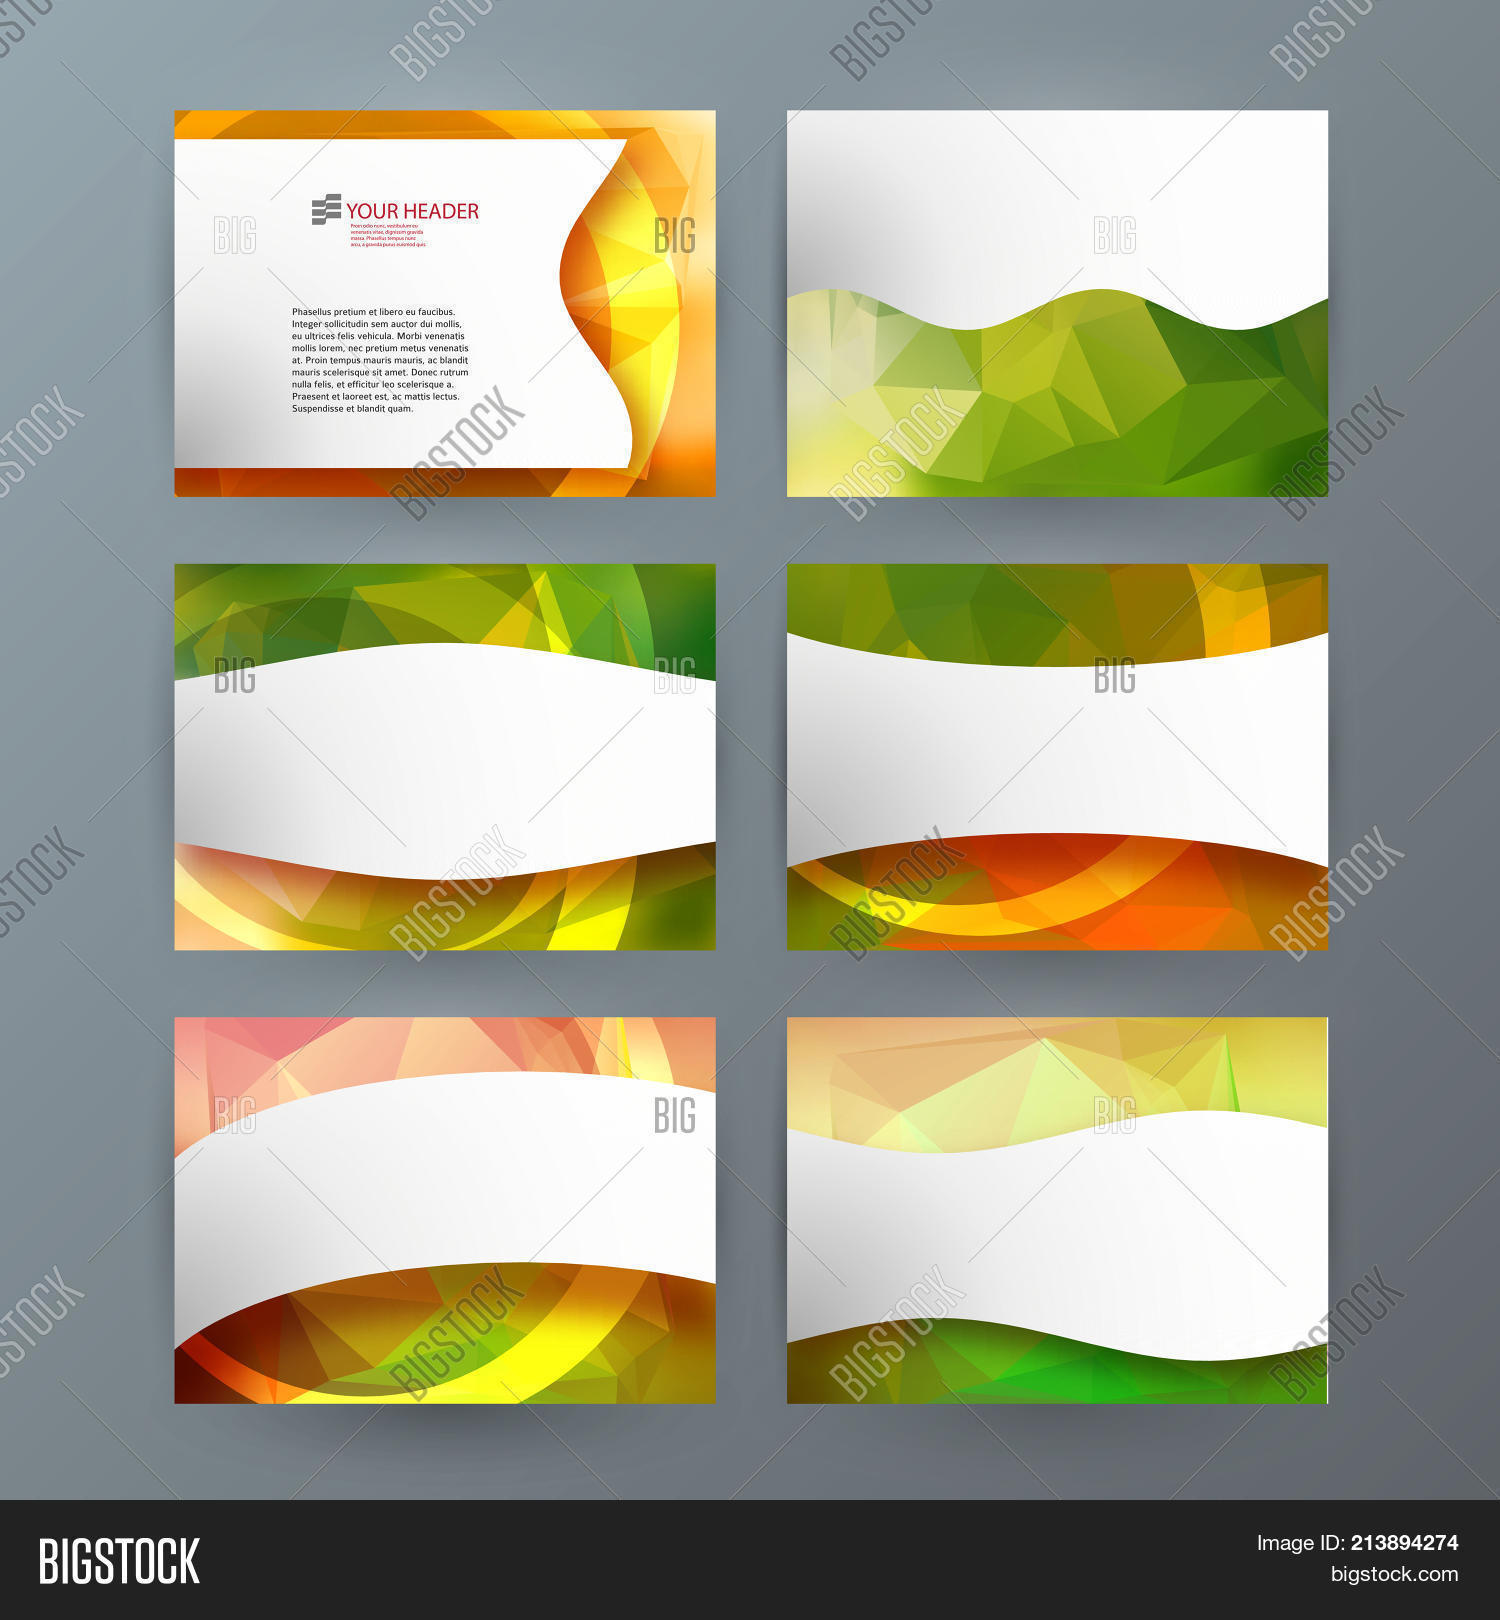 Businness Card Vector Photo Free Trial Bigstock